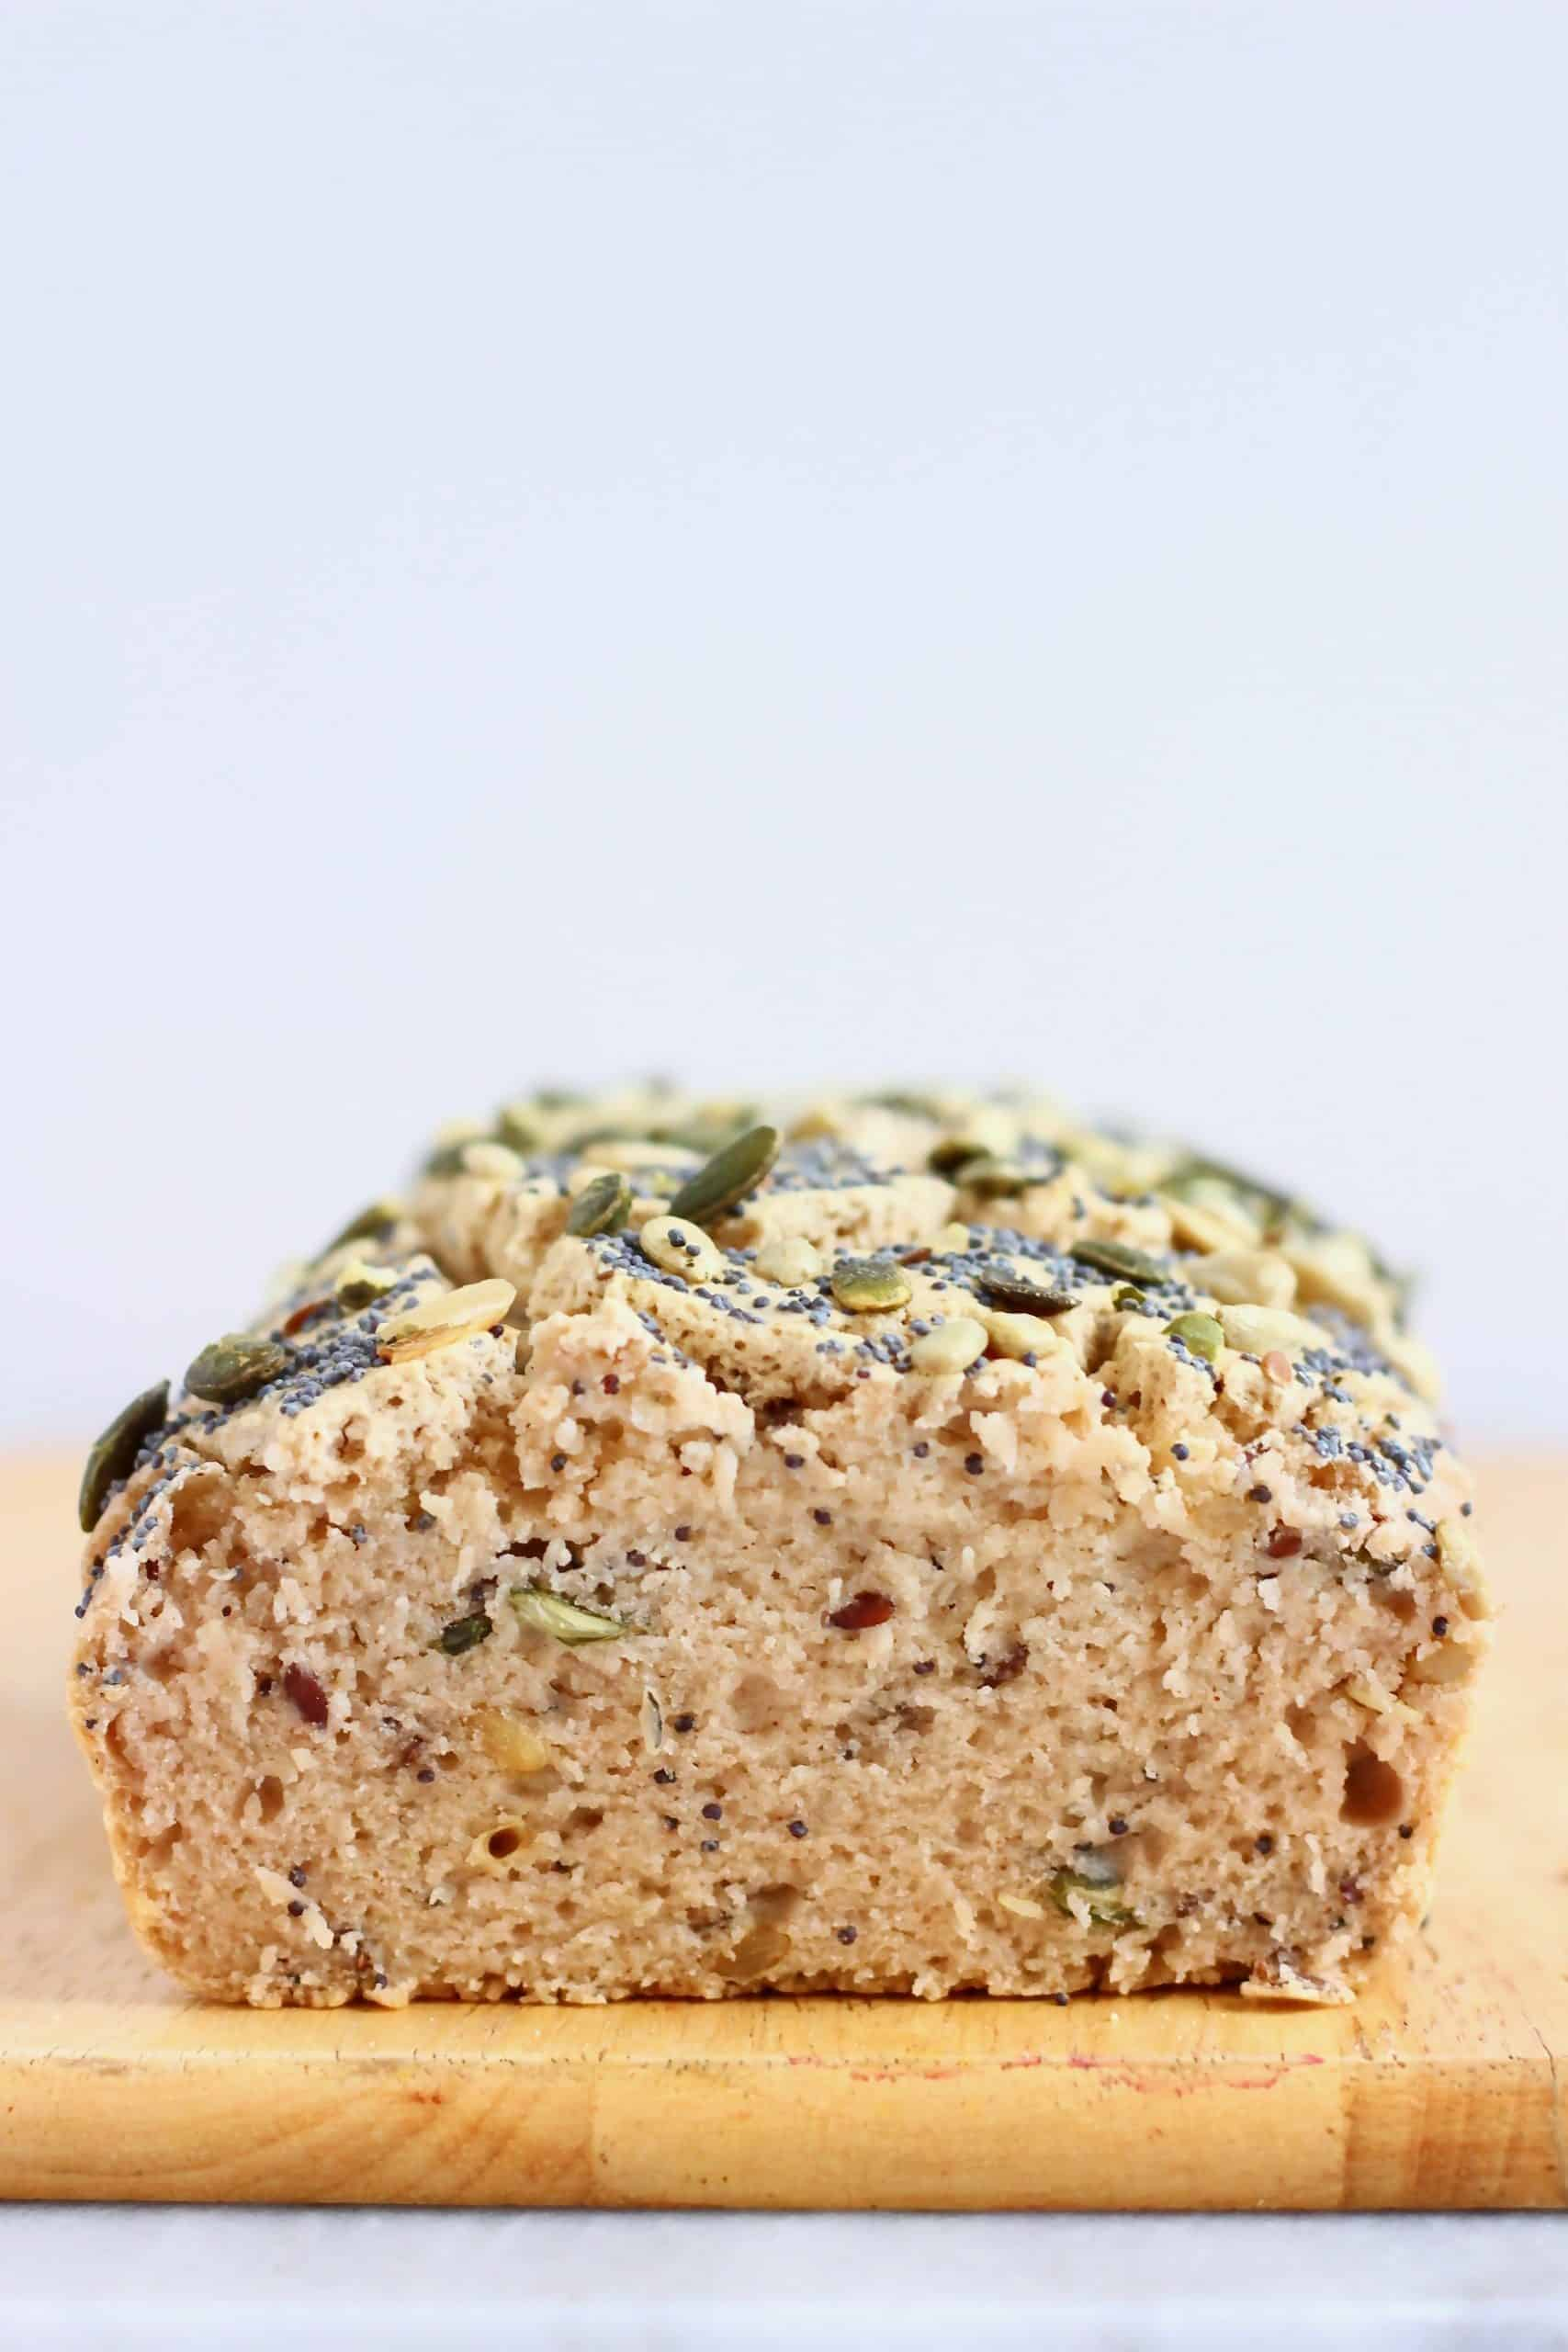 A loaf of buckwheat bread topped with seeds